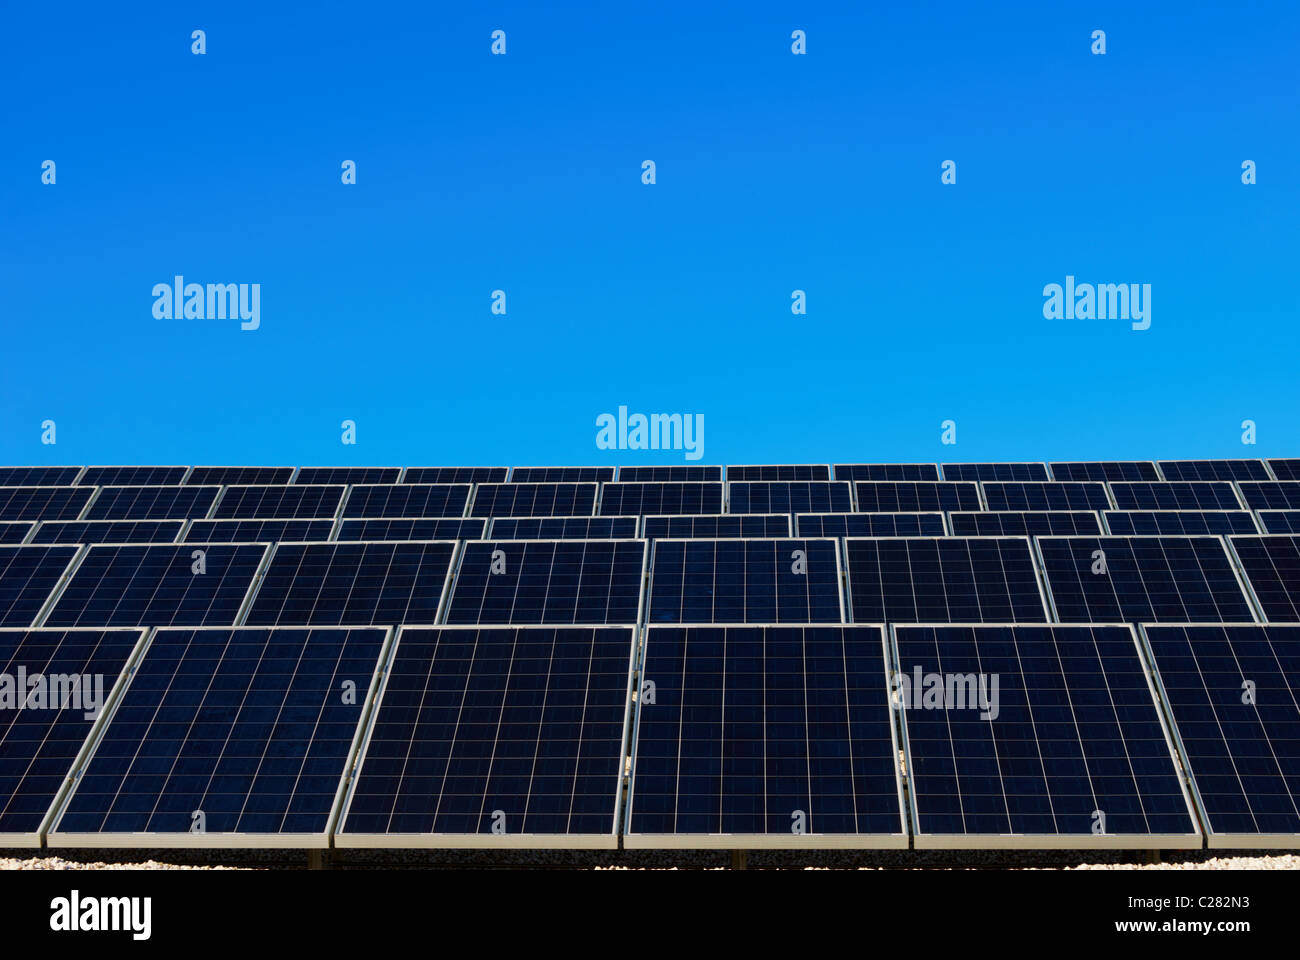 Blue and white solar panel in a row under clear blue sky - Stock Image